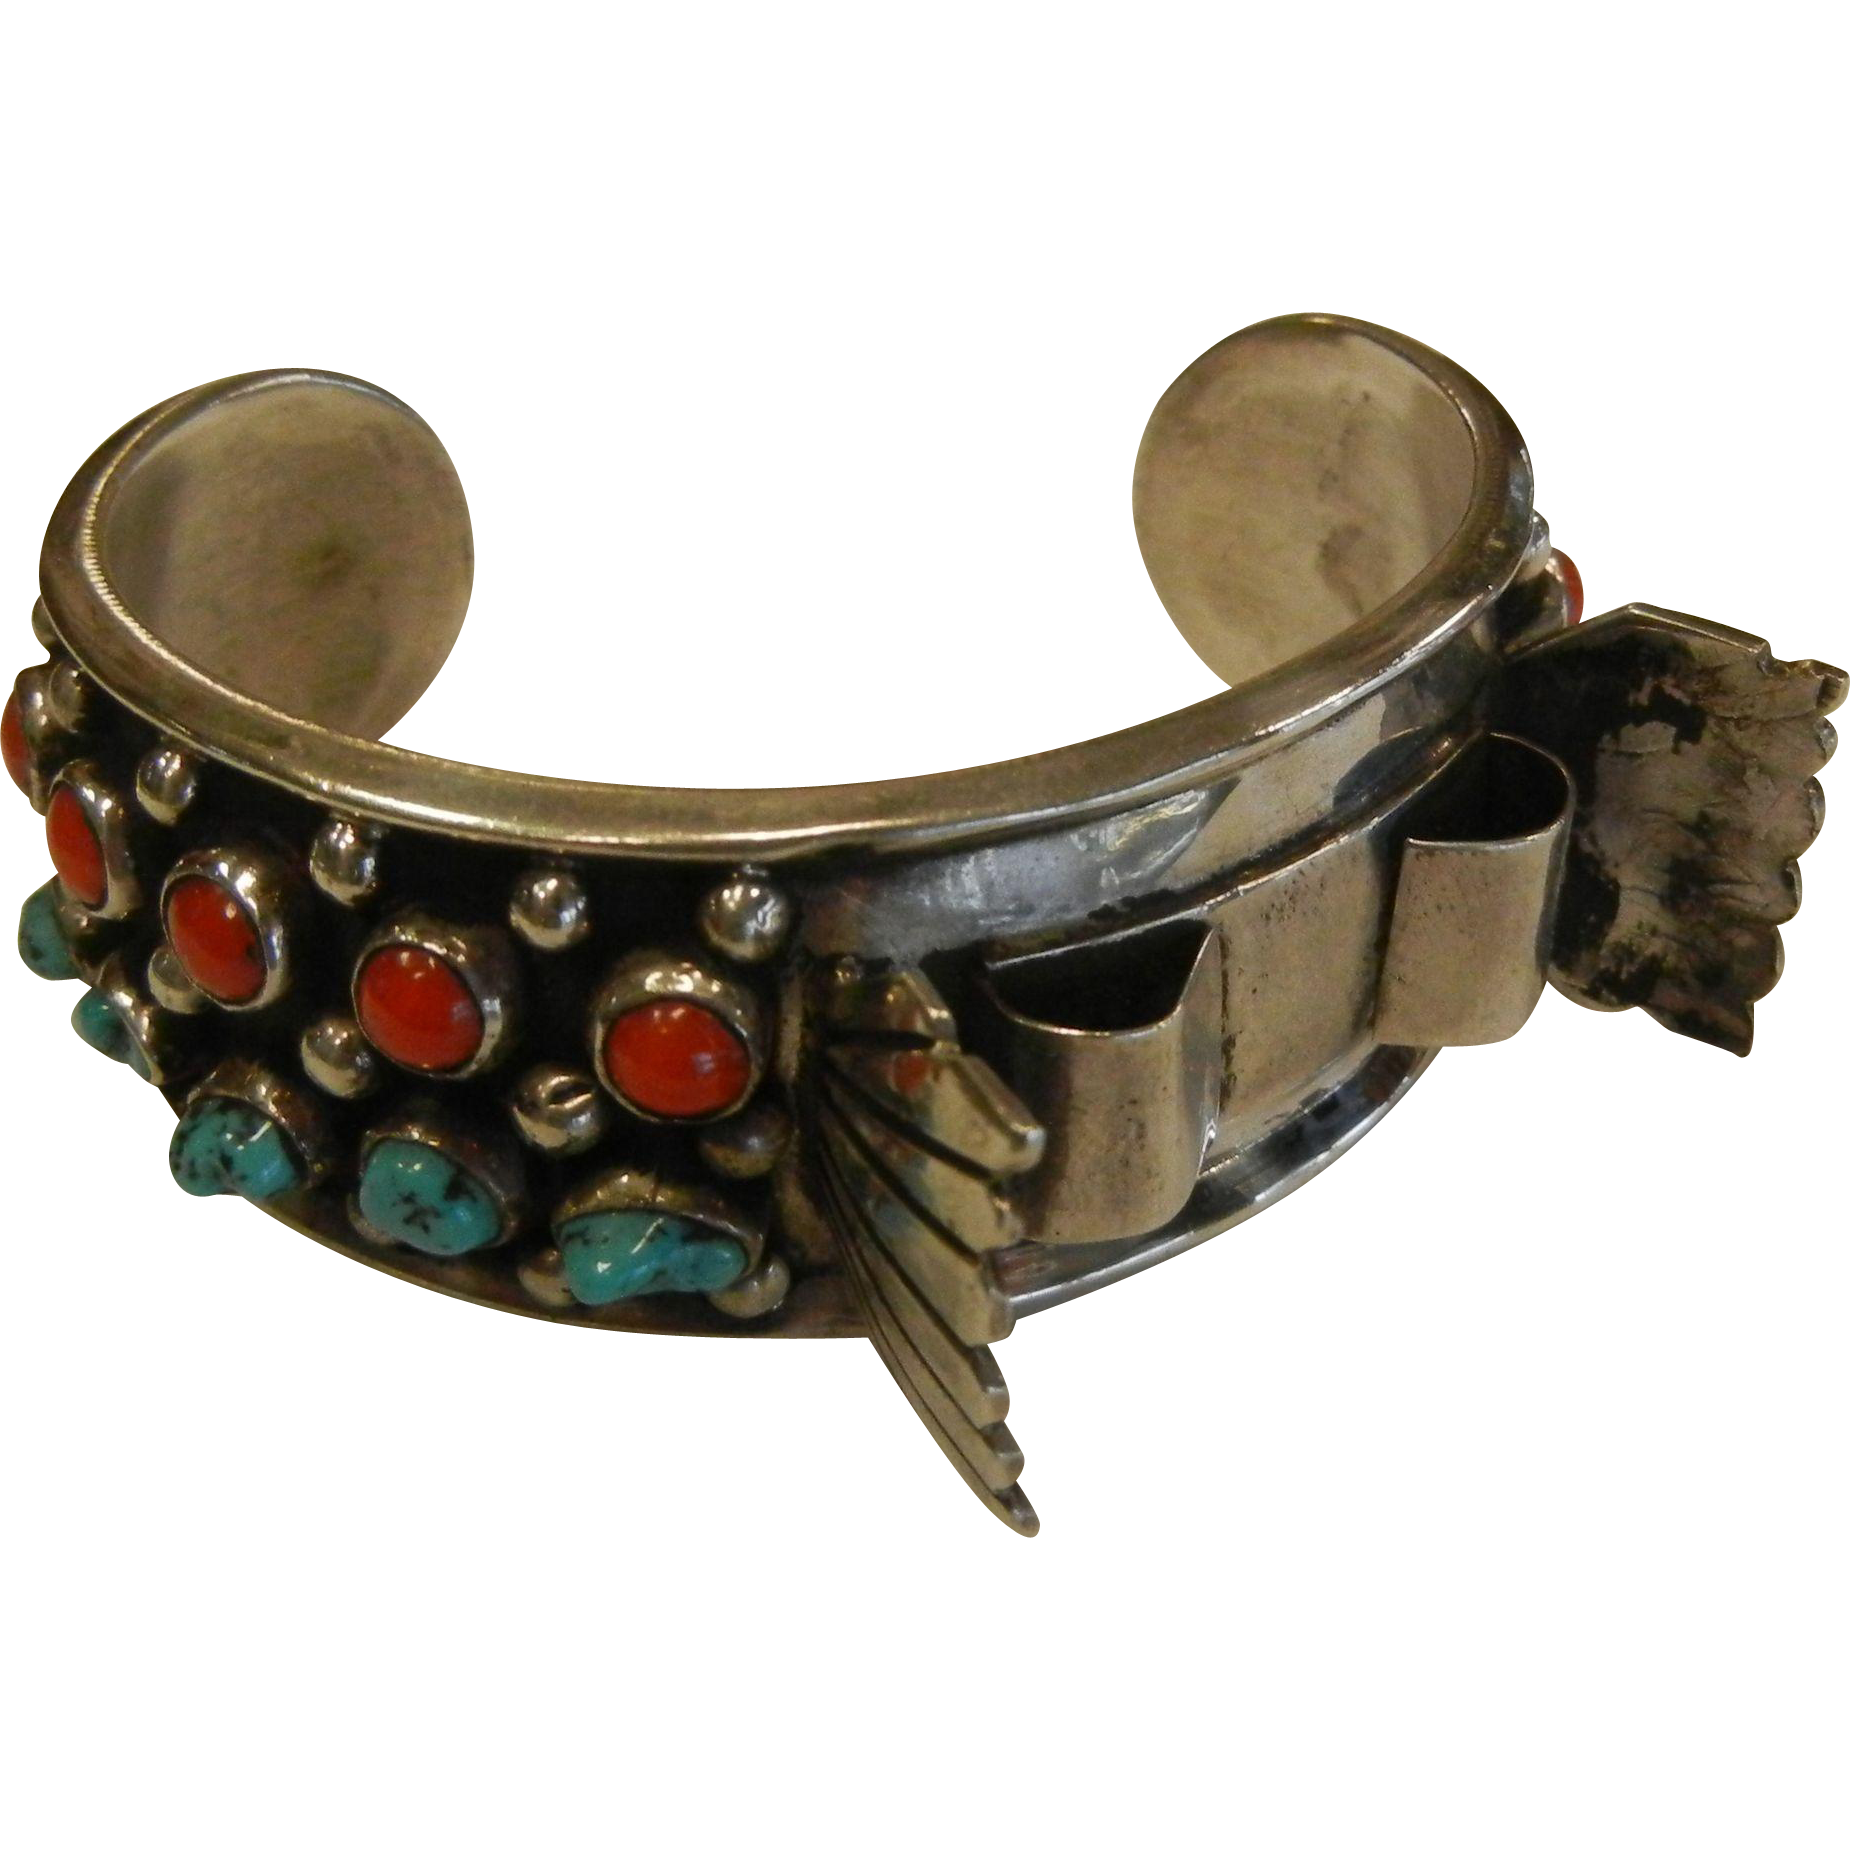 Fine Vintage Sterling Silver Cuff Bracelet w/ Natural Turquoise & Coral - Signed FG